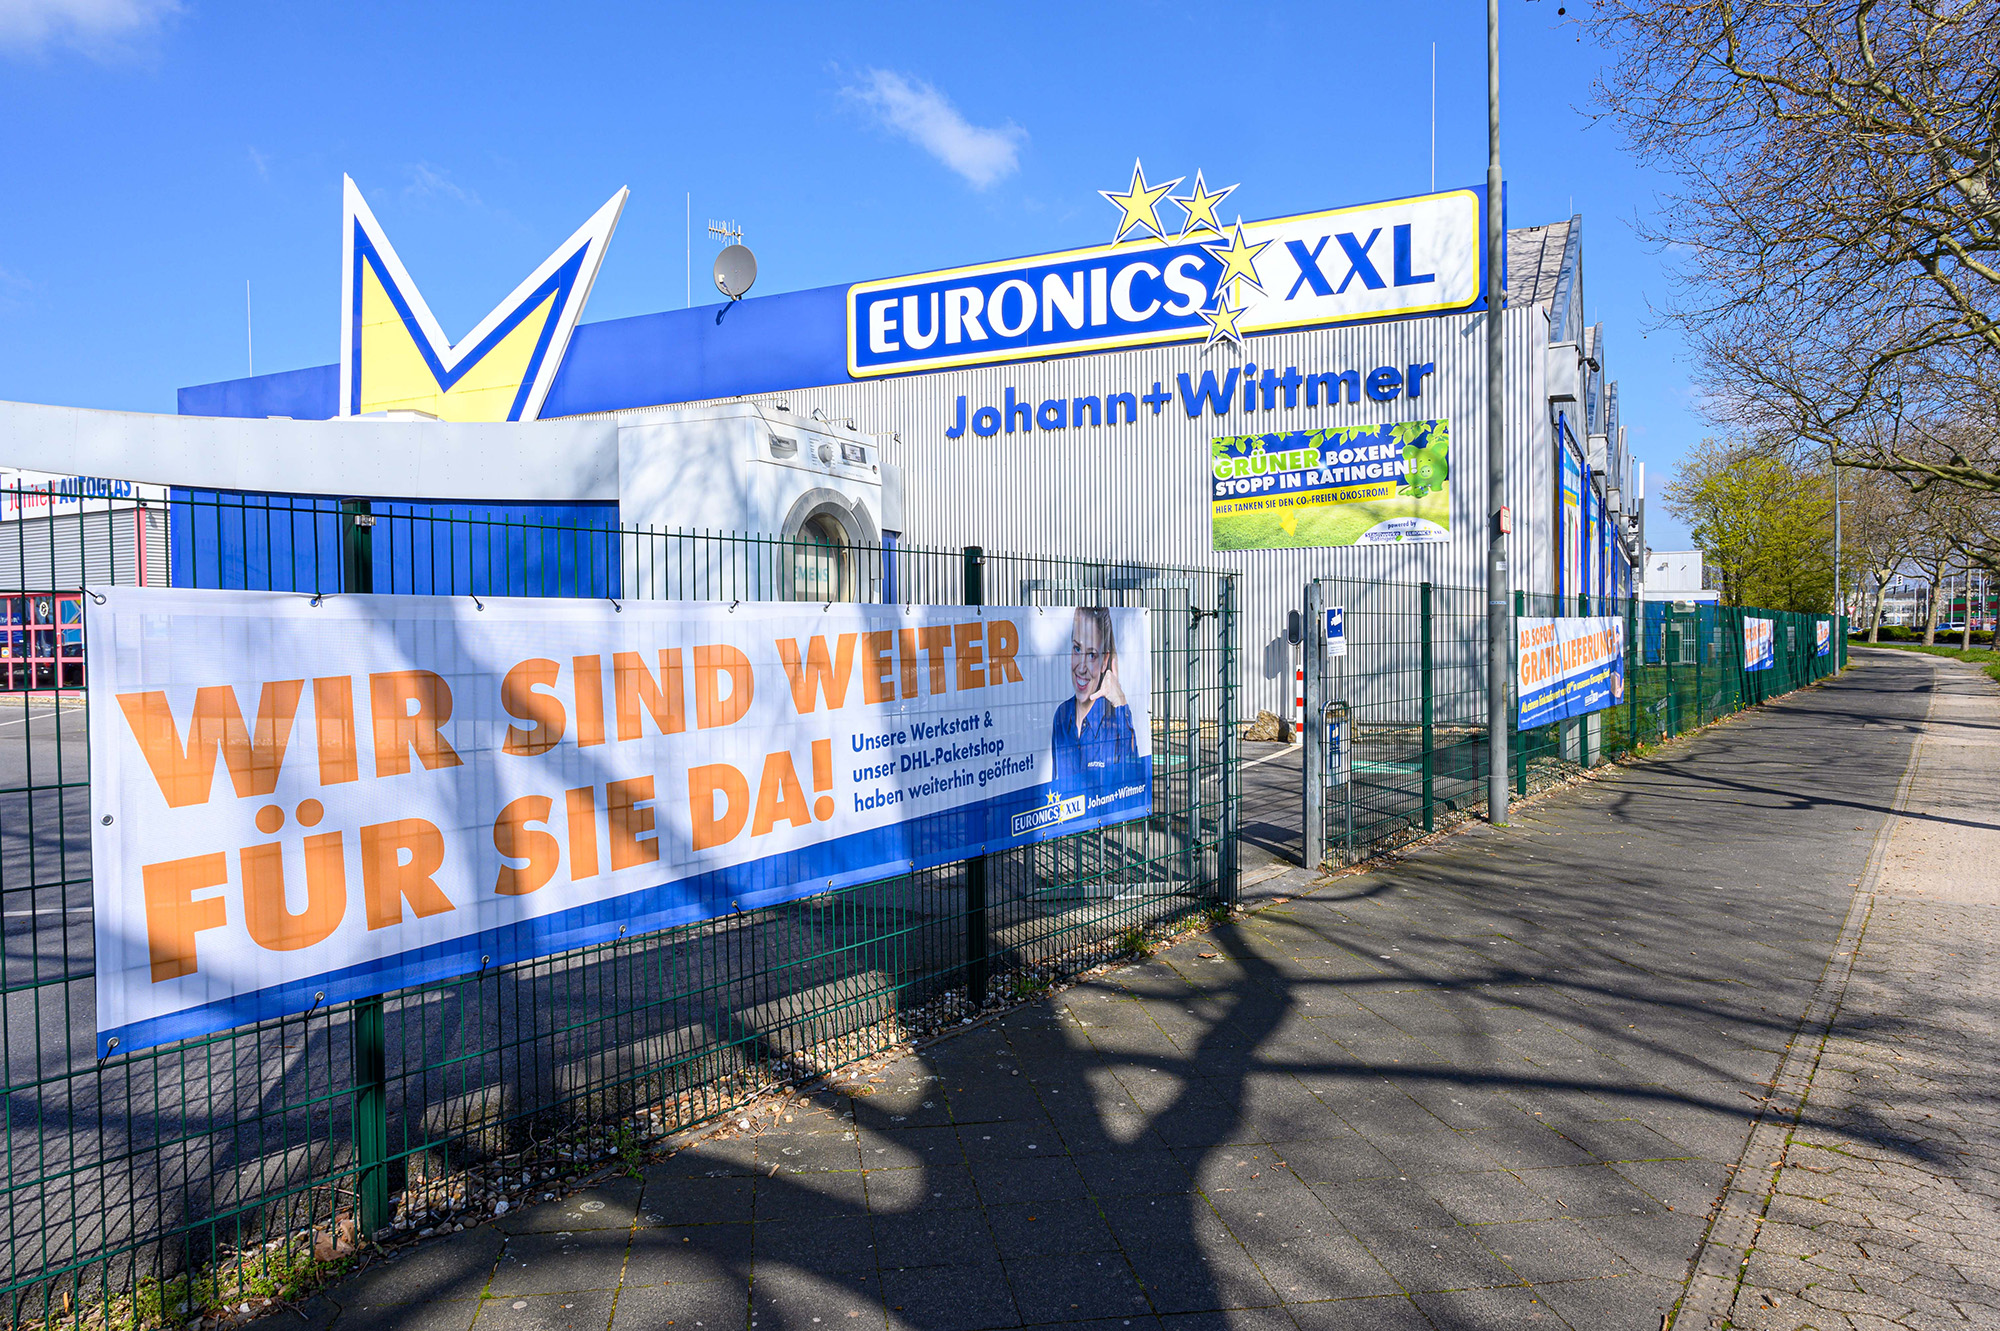 Euronics XXL Ratingen